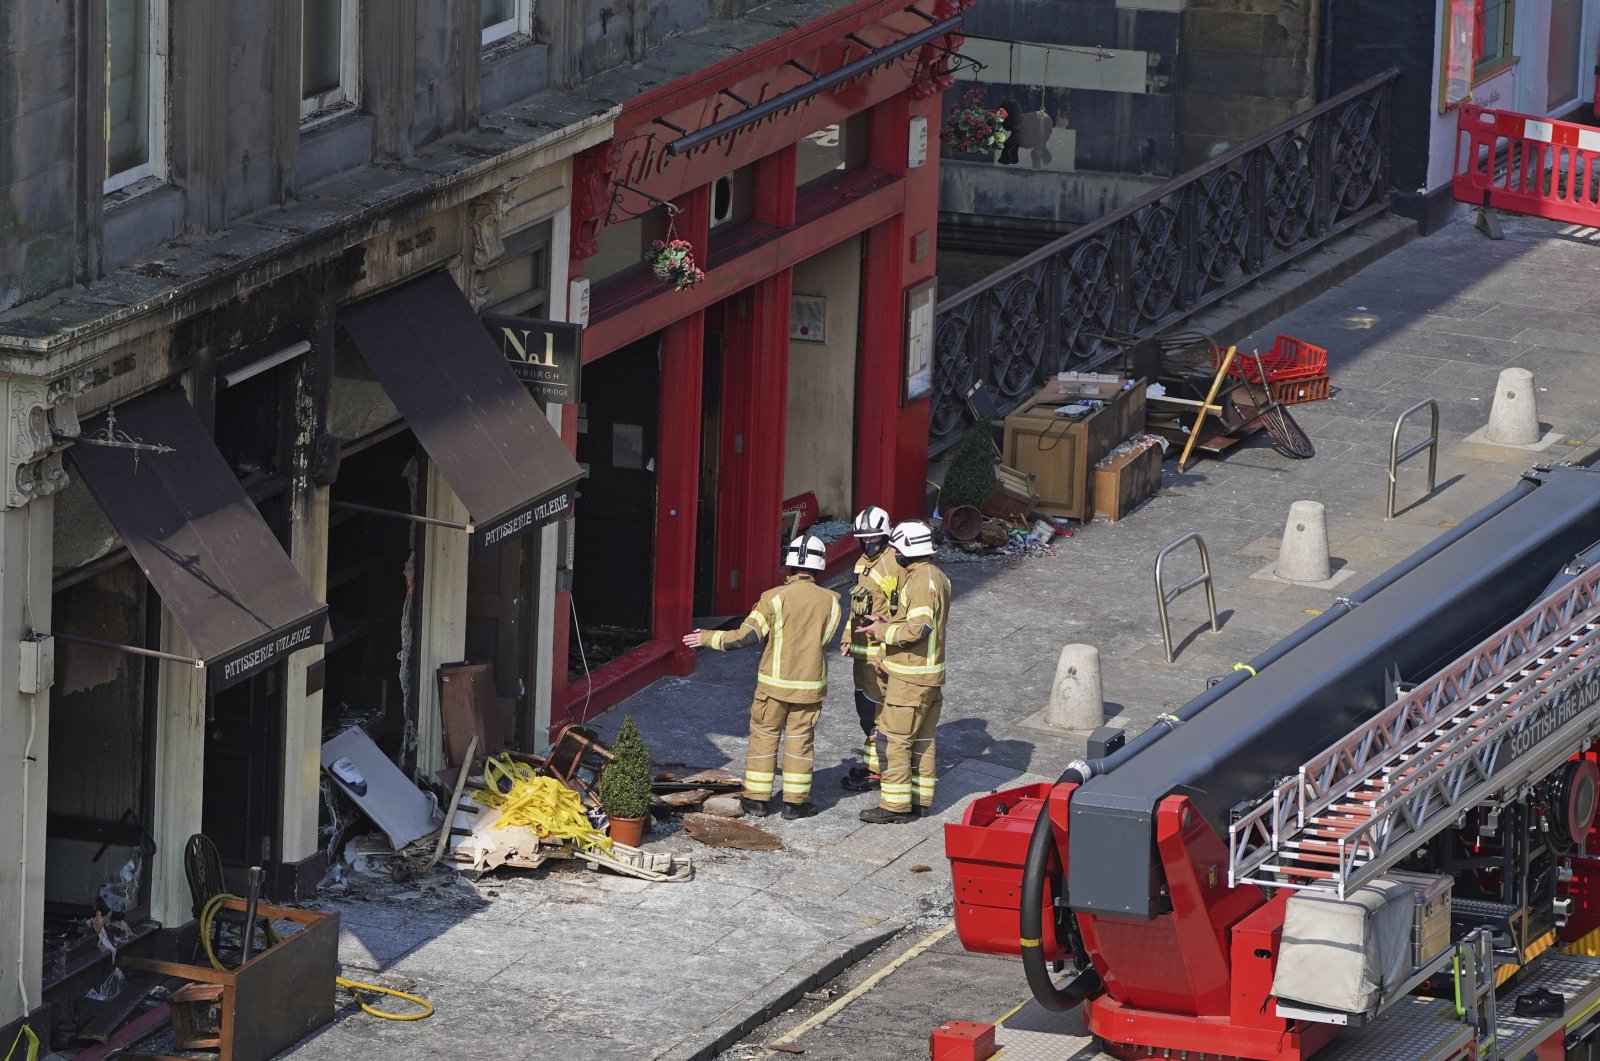 Firefighters at the scene after a fire at the Elephant House Cafe in Edinburgh, U.K., Aug. 25, 2021. (Andrew Milligan / PA via AP)